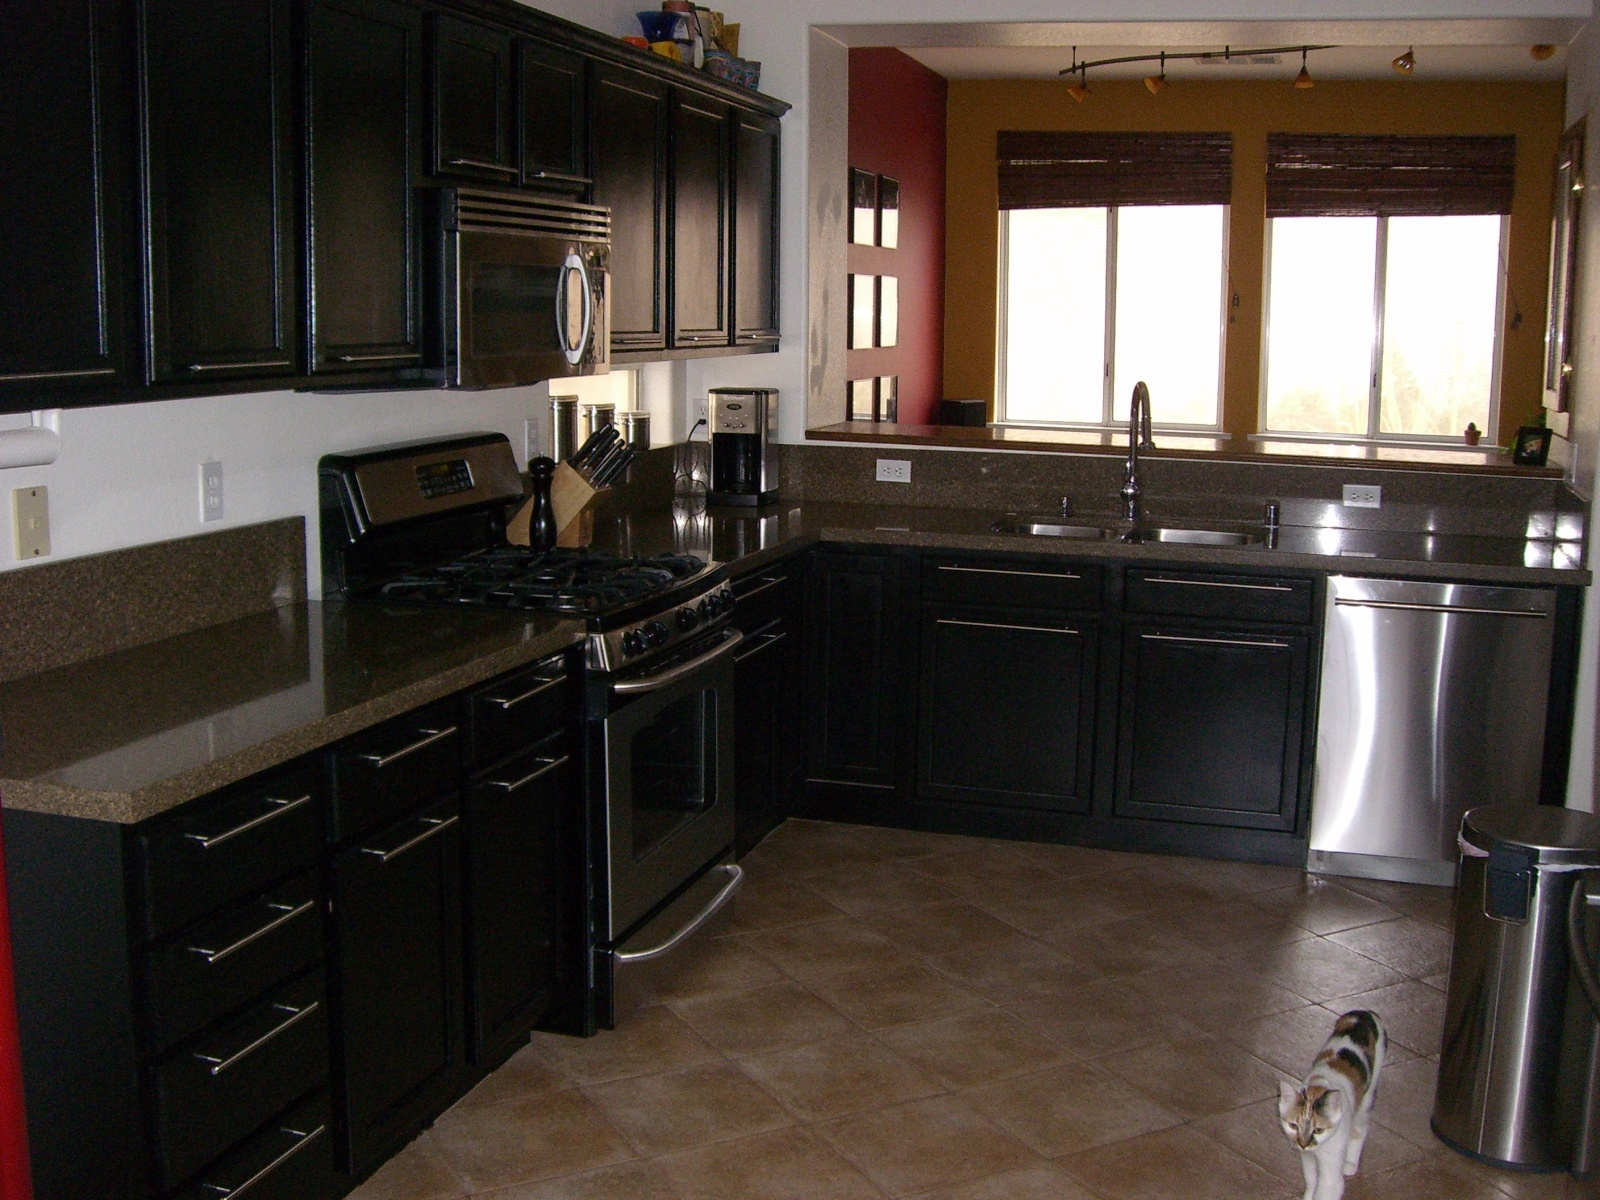 Black Pull Handles Kitchen Cabinets Floor Rugs Michael Blanchard Handyman Services Small Projects That